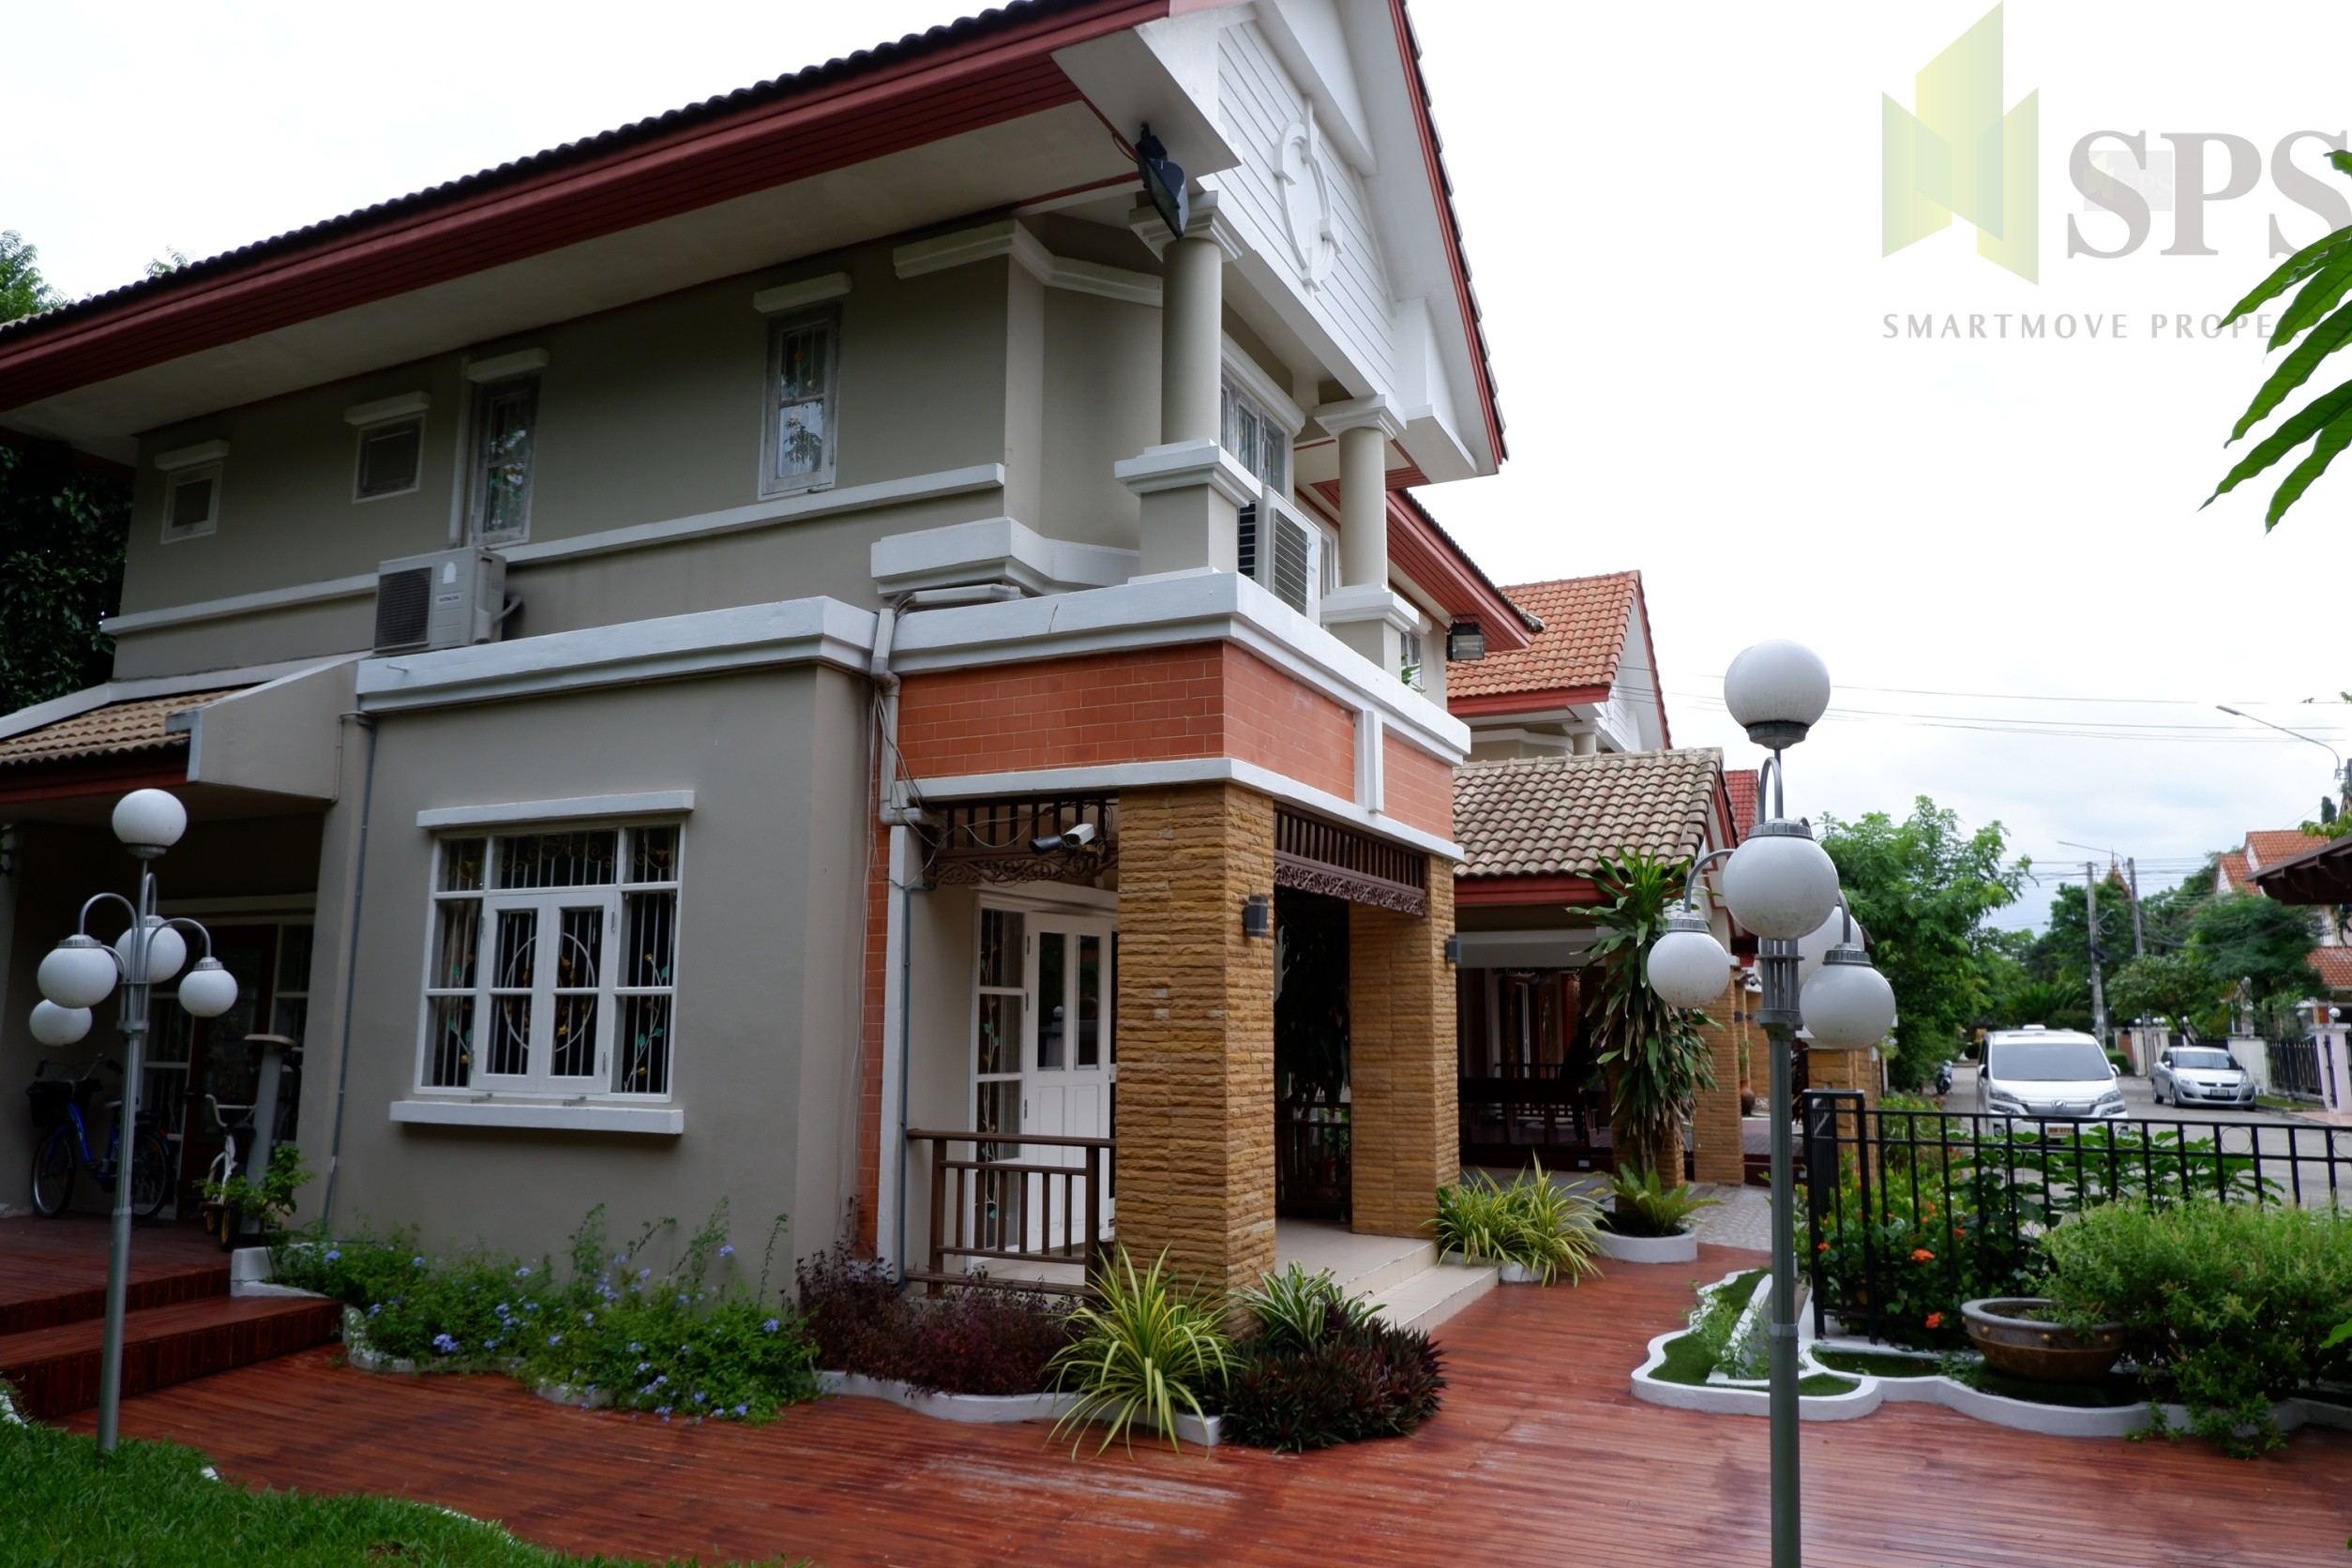 For Sale Single House 6 bedrooms Krongthong Pavilion Village Chalermprakiat Lor 9 (SPS-GH126)